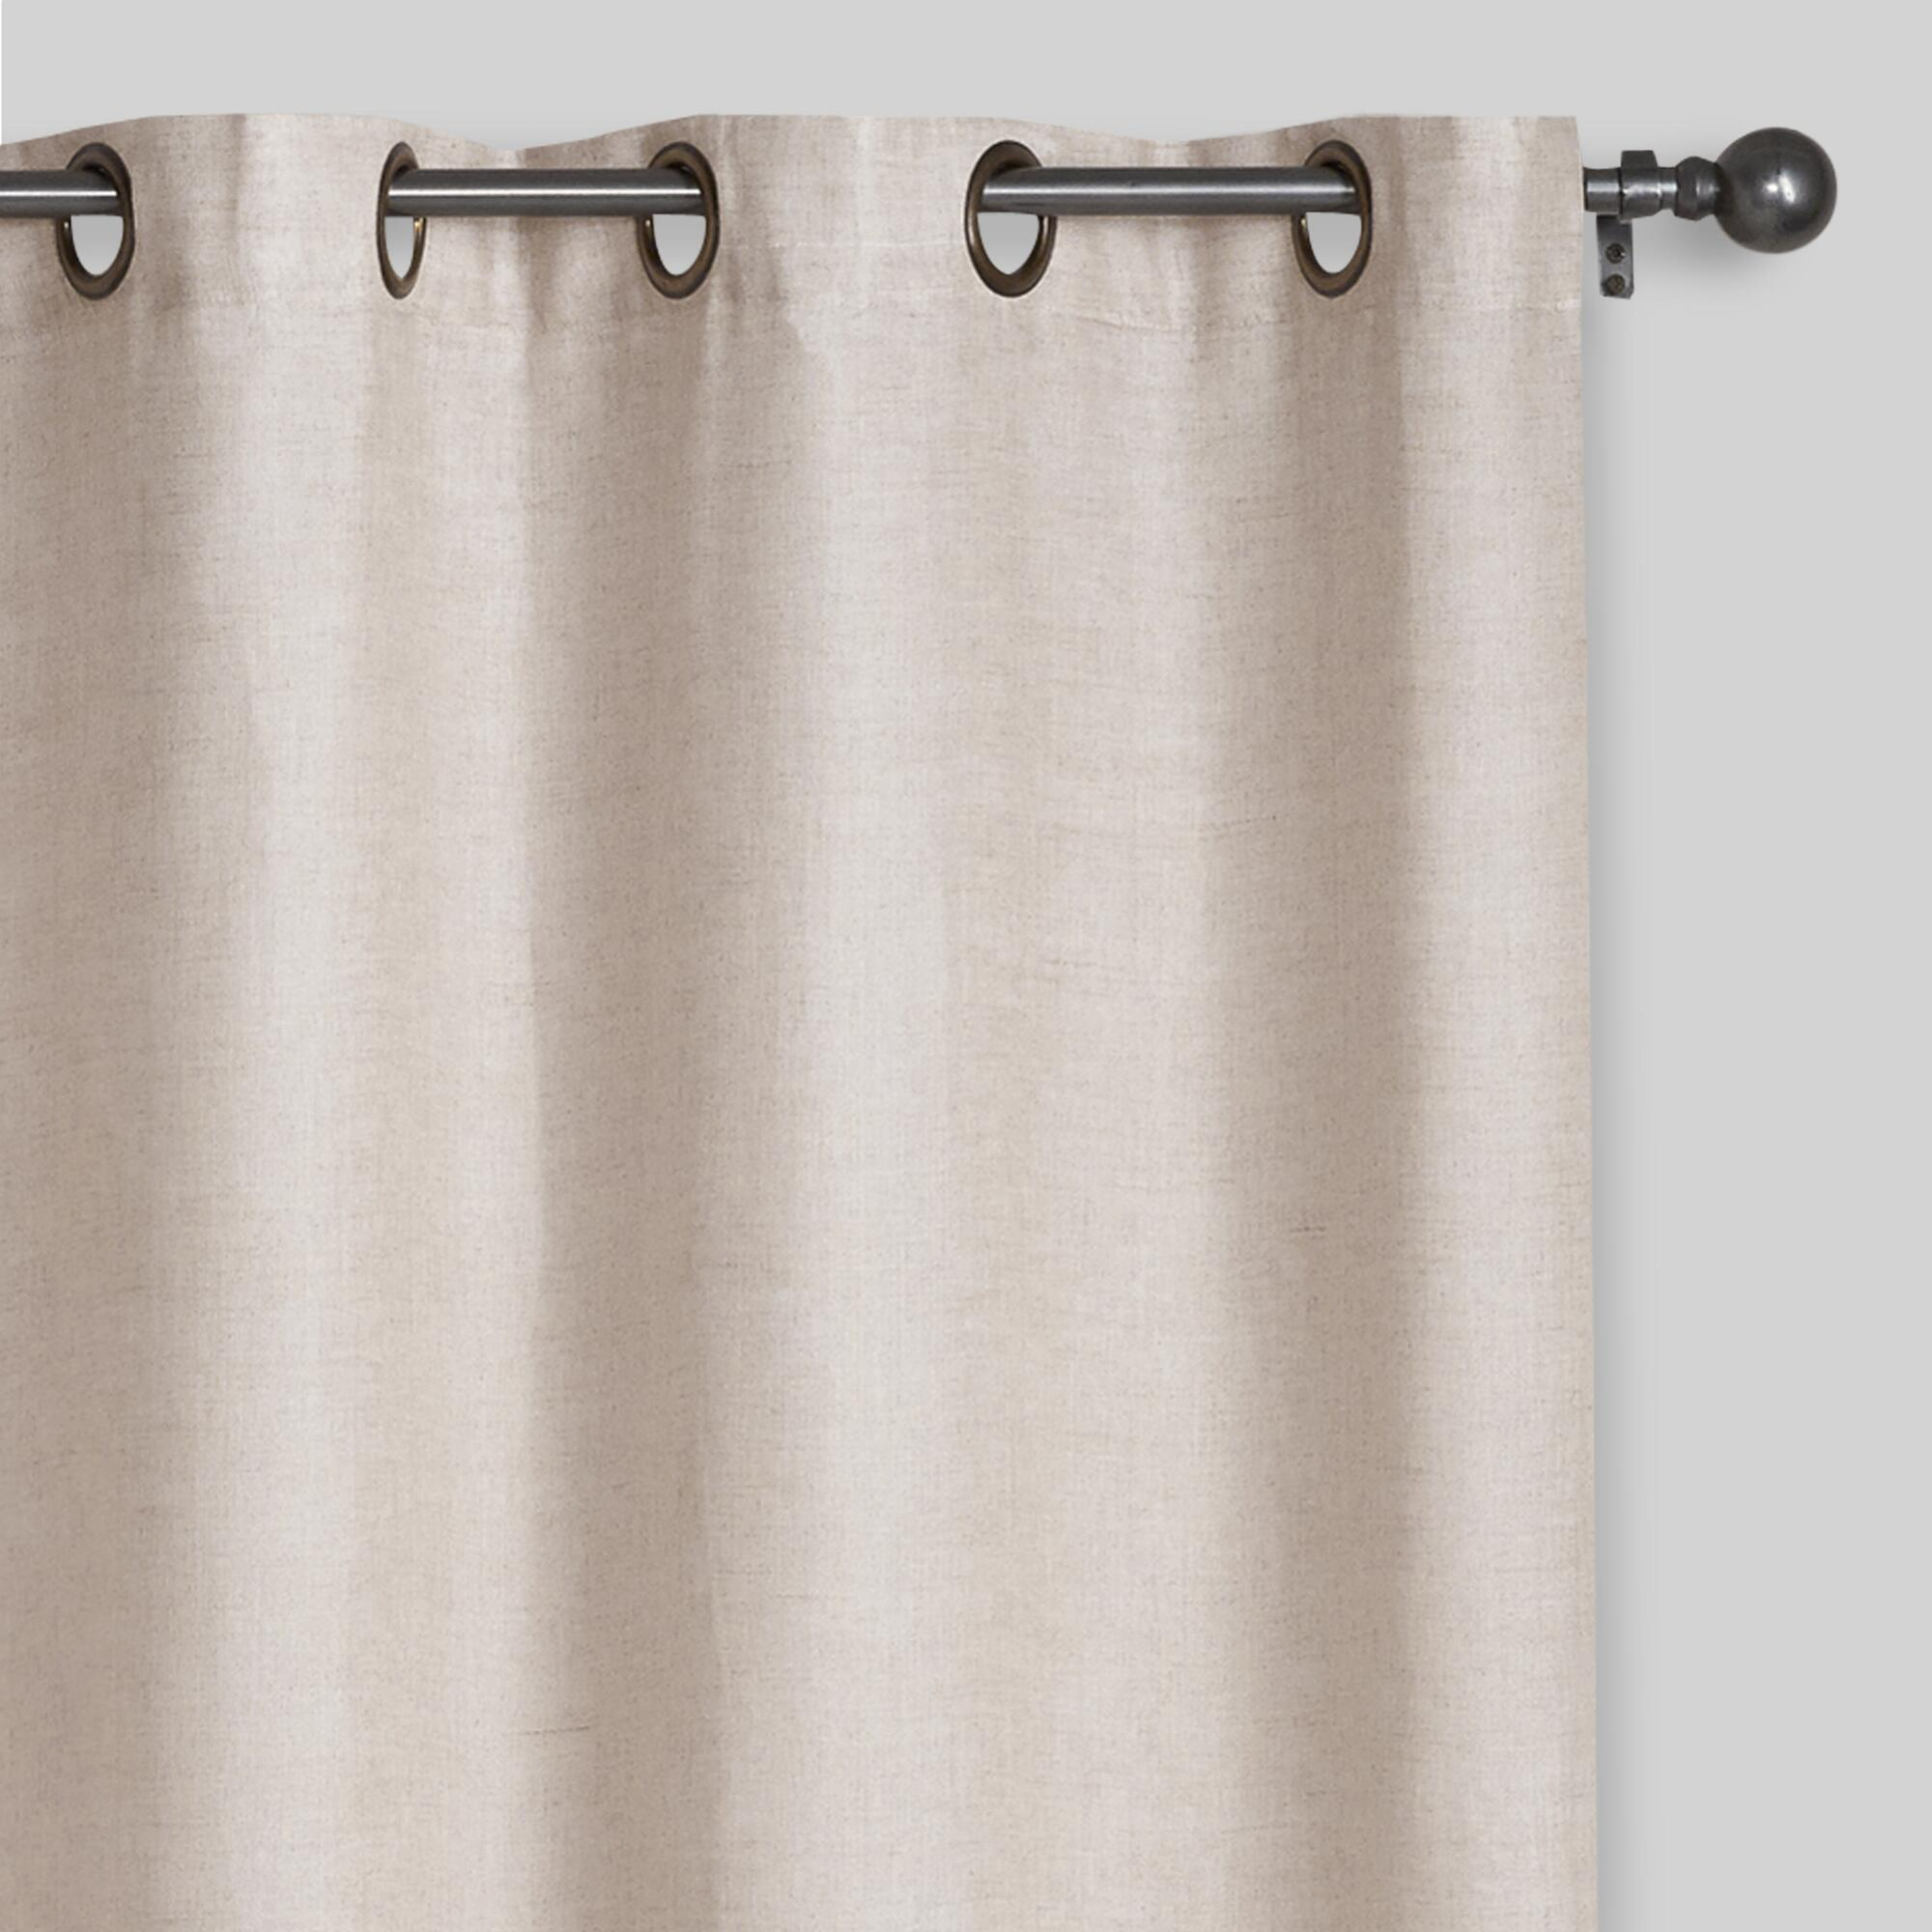 Threshold linen grommet sheer curtain panel product details page - Natural Linen Grommet Top Curtains Set Of 2